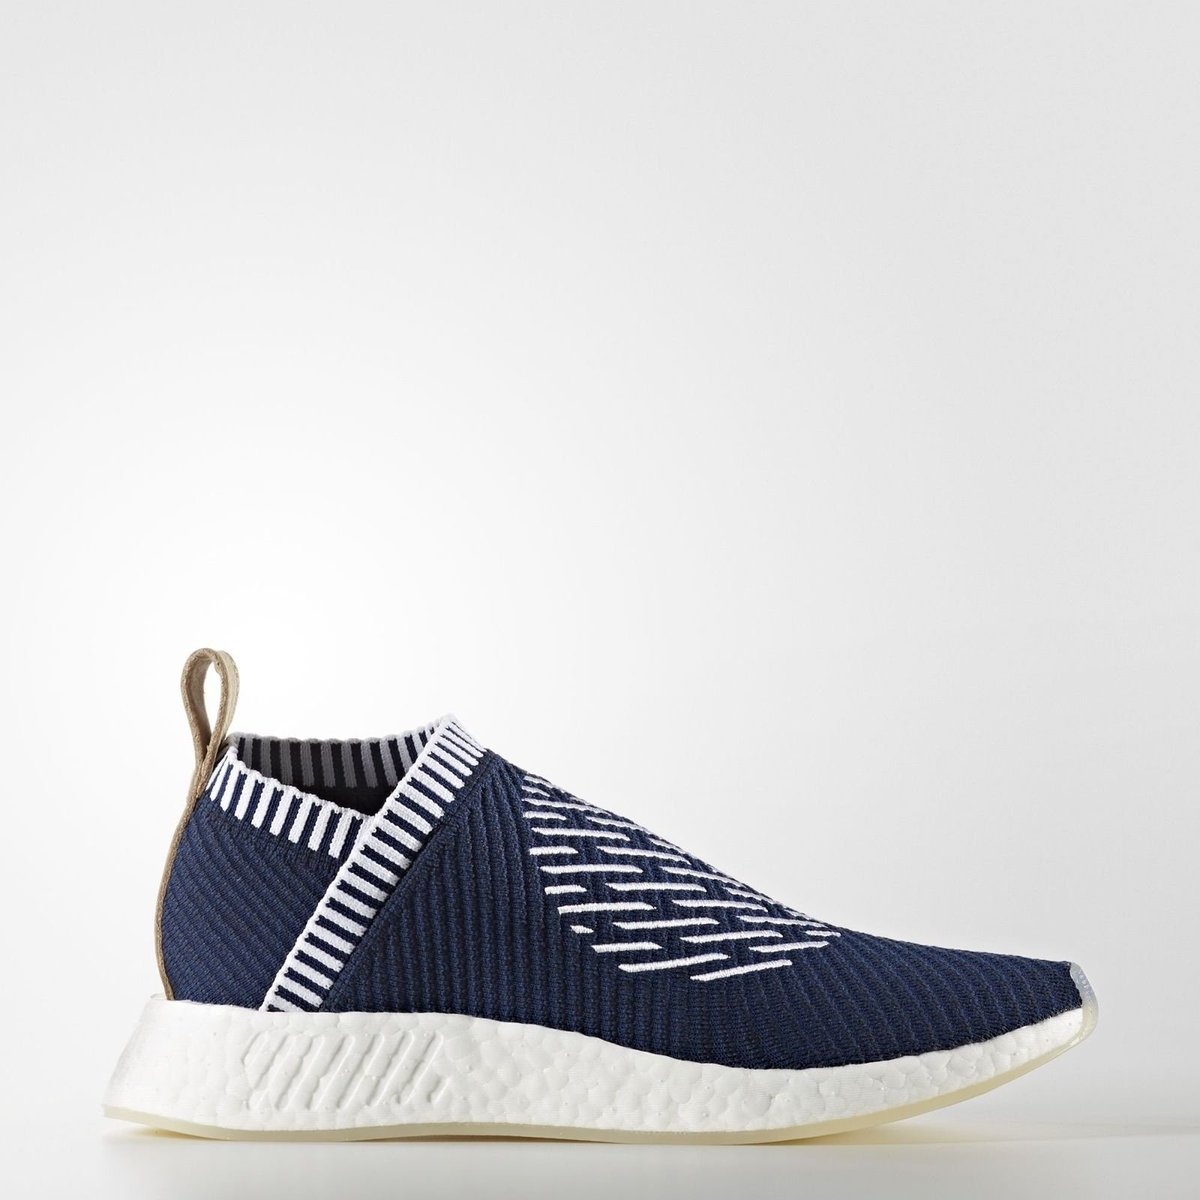 158f8ed76f622 Adidas NMD CS2 Primeknit for  63.99! Reselling for  100+ on StockX! Use  promo code PICKDADSGIFT with paypal at checkout! https   t.co kx10cw7bHG…  ...